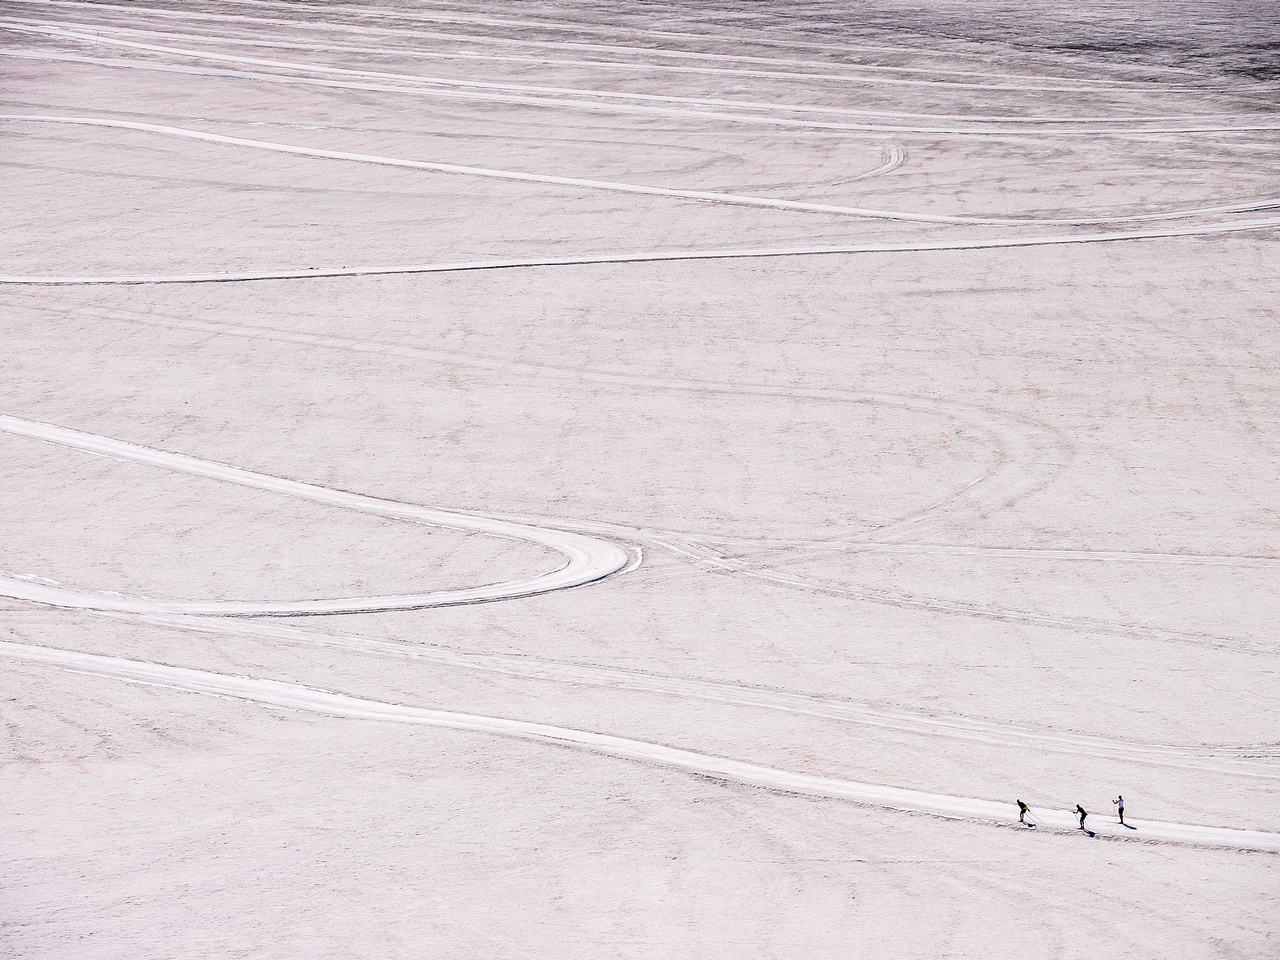 Skiers on a white canvas.